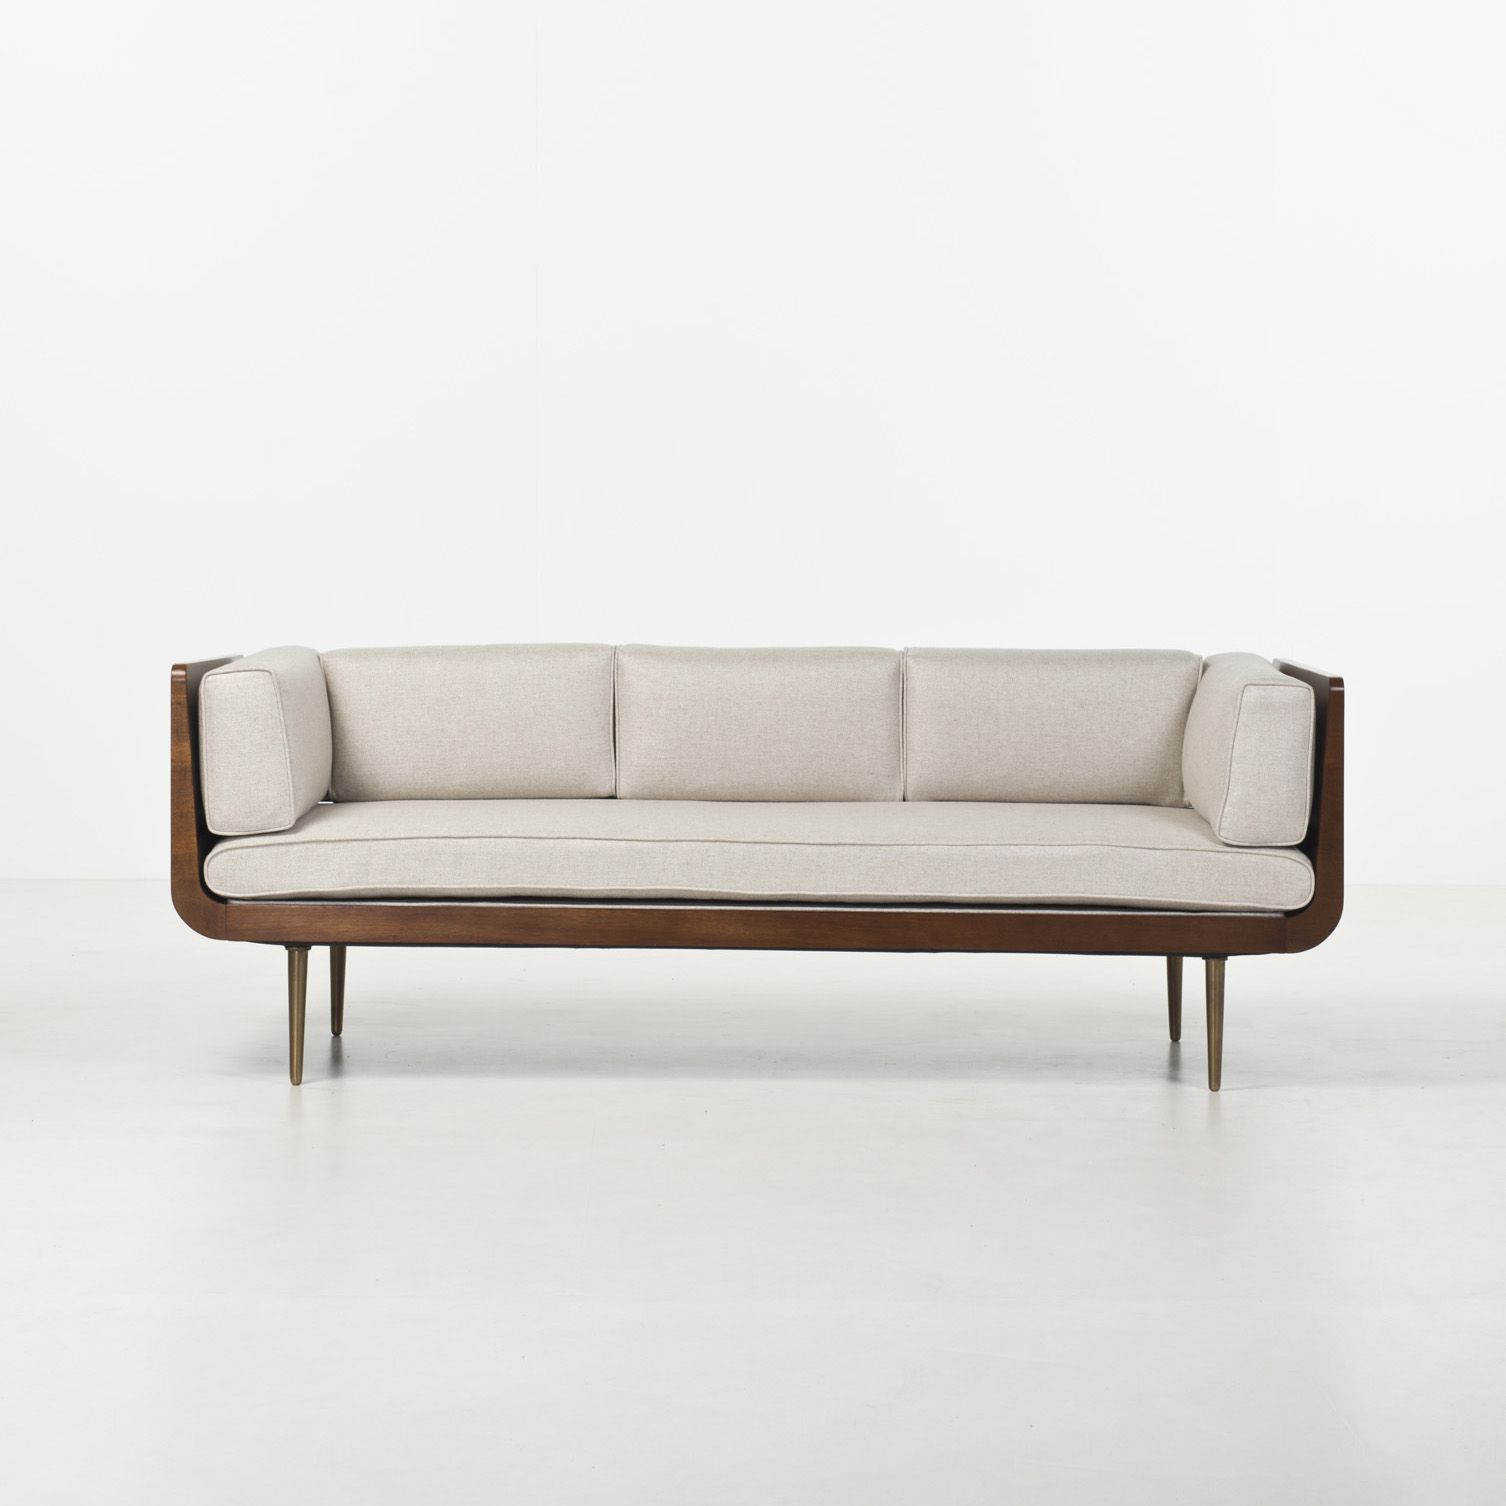 Another Country Sofa e Furniture Pinterest